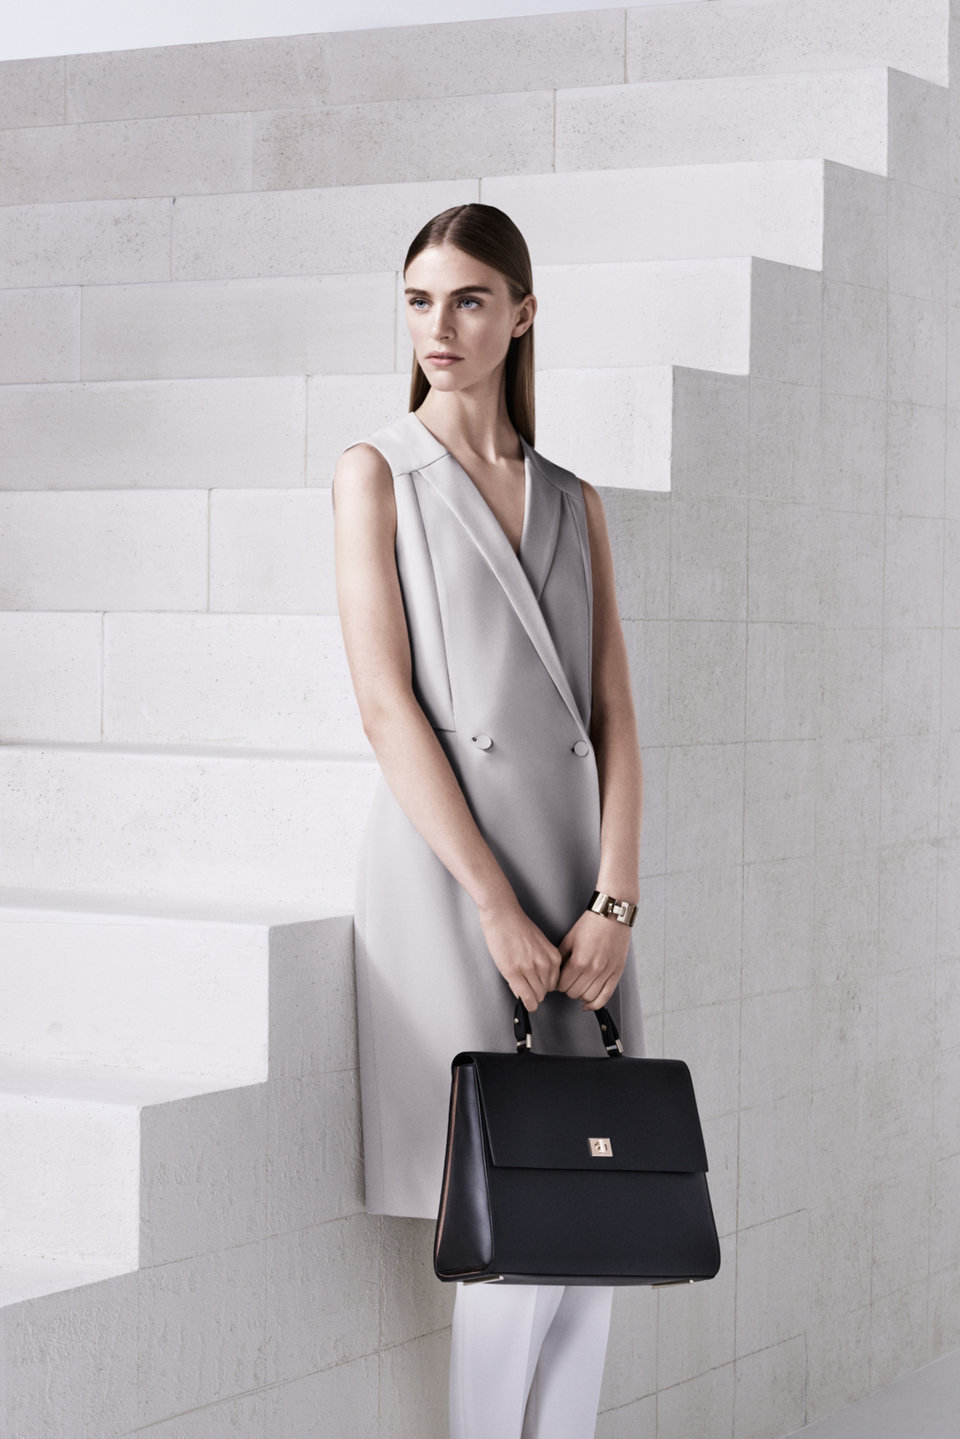 Silver dress, silver trousers and black bag by BOSS